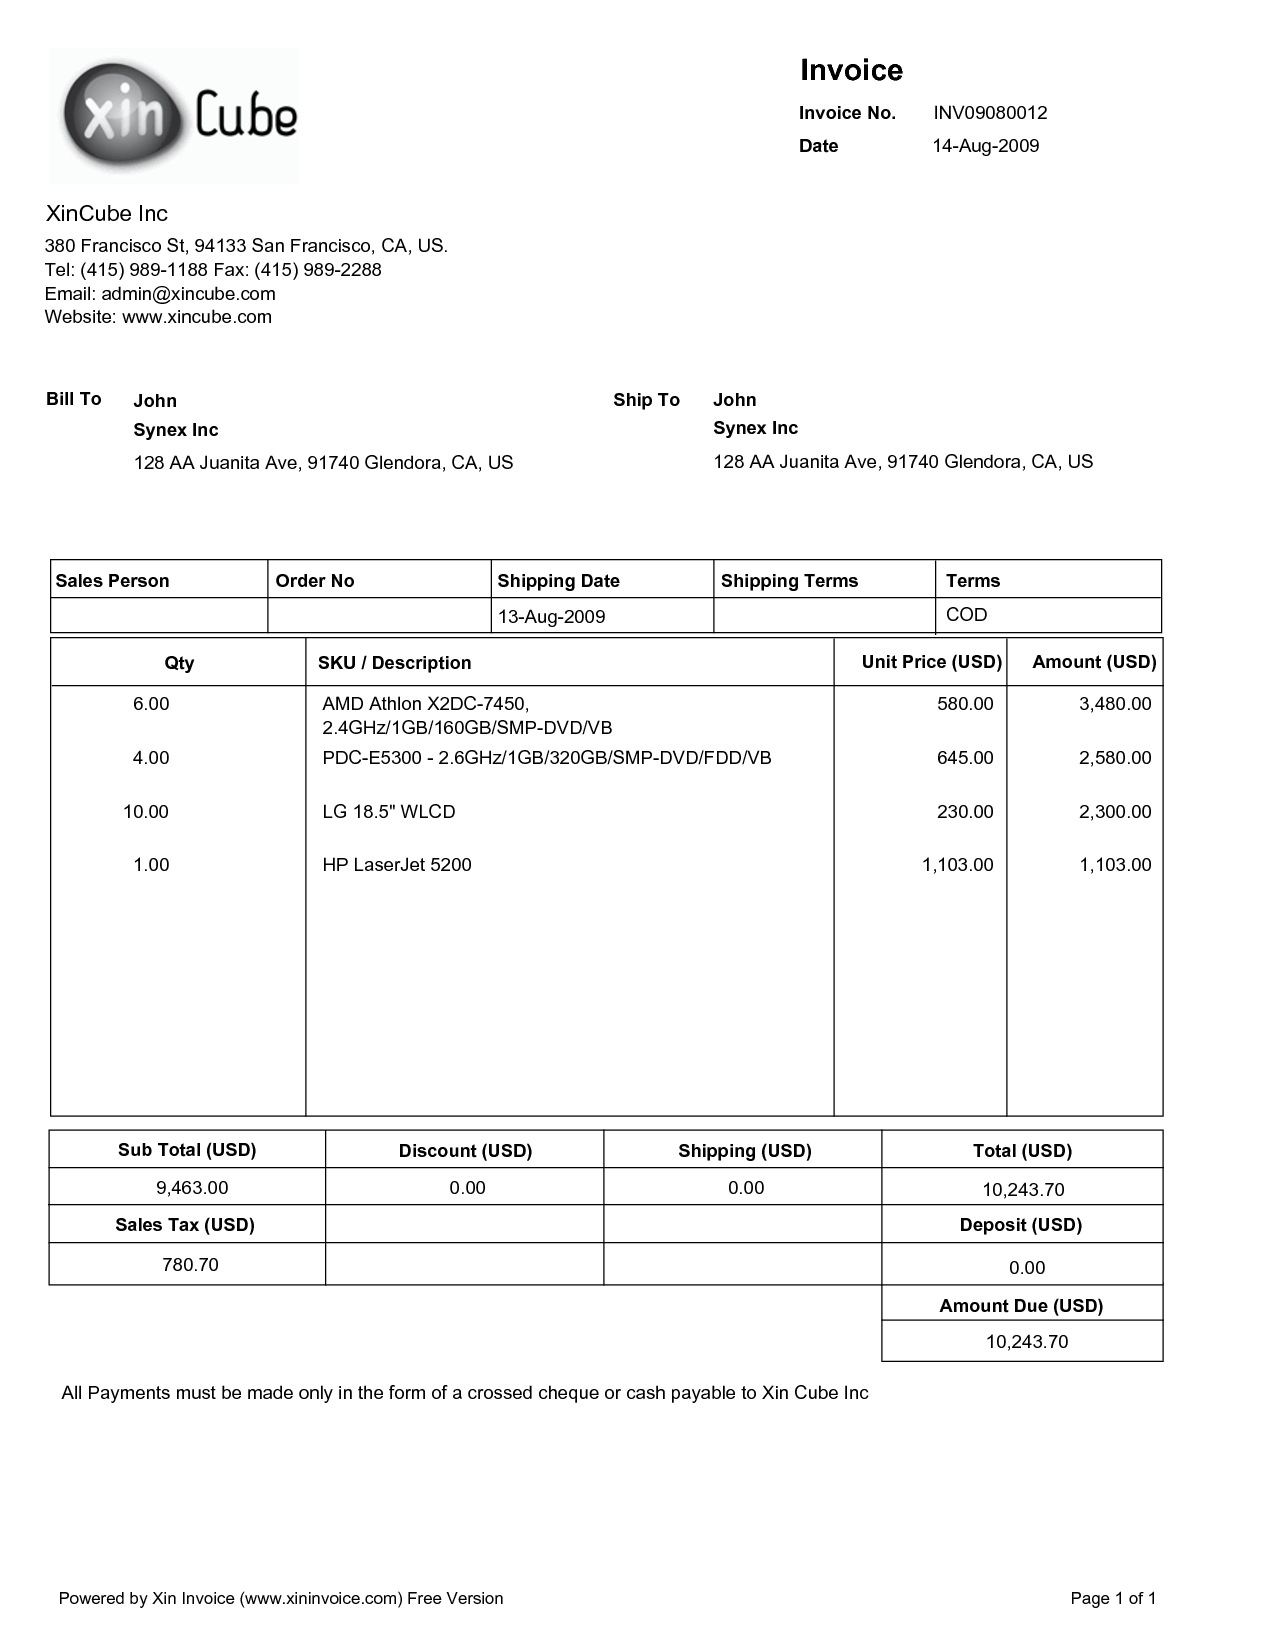 invoice template pdf download pin download invoice template pdf invoice template pdf free download